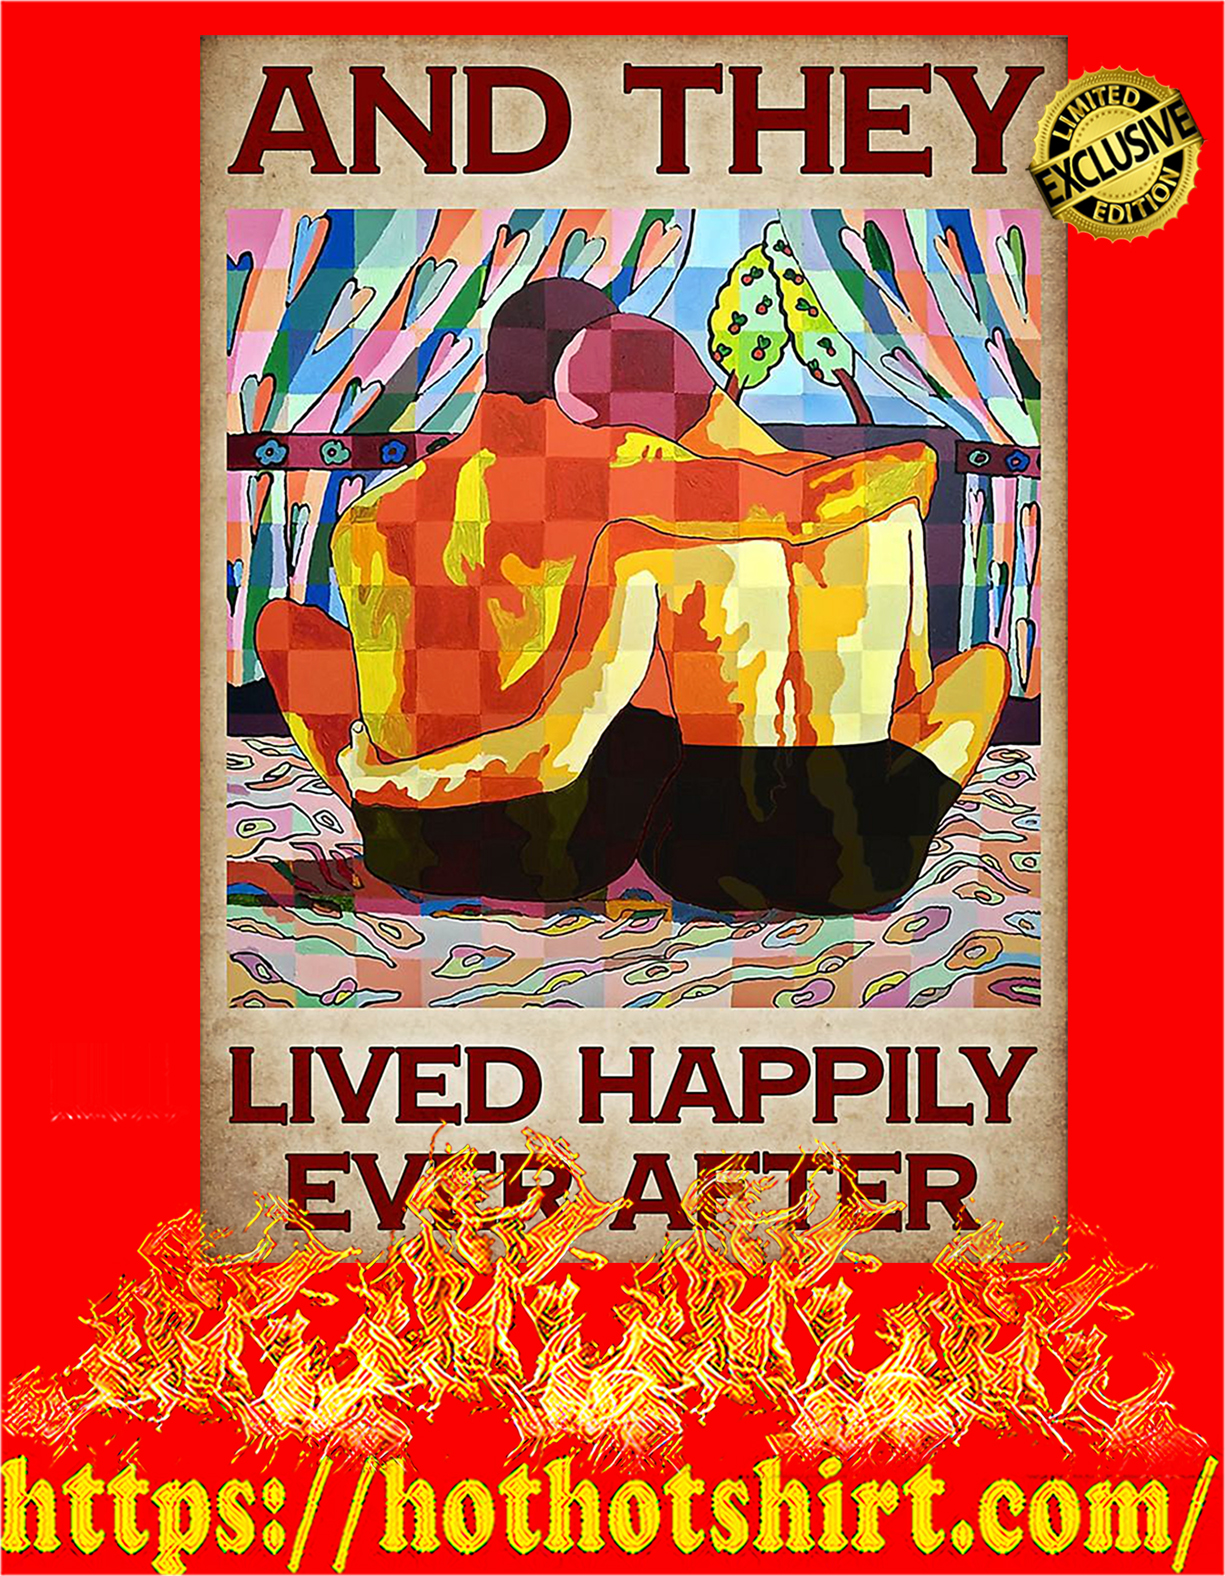 LGBT Pride And they lived happily ever after poster - A4